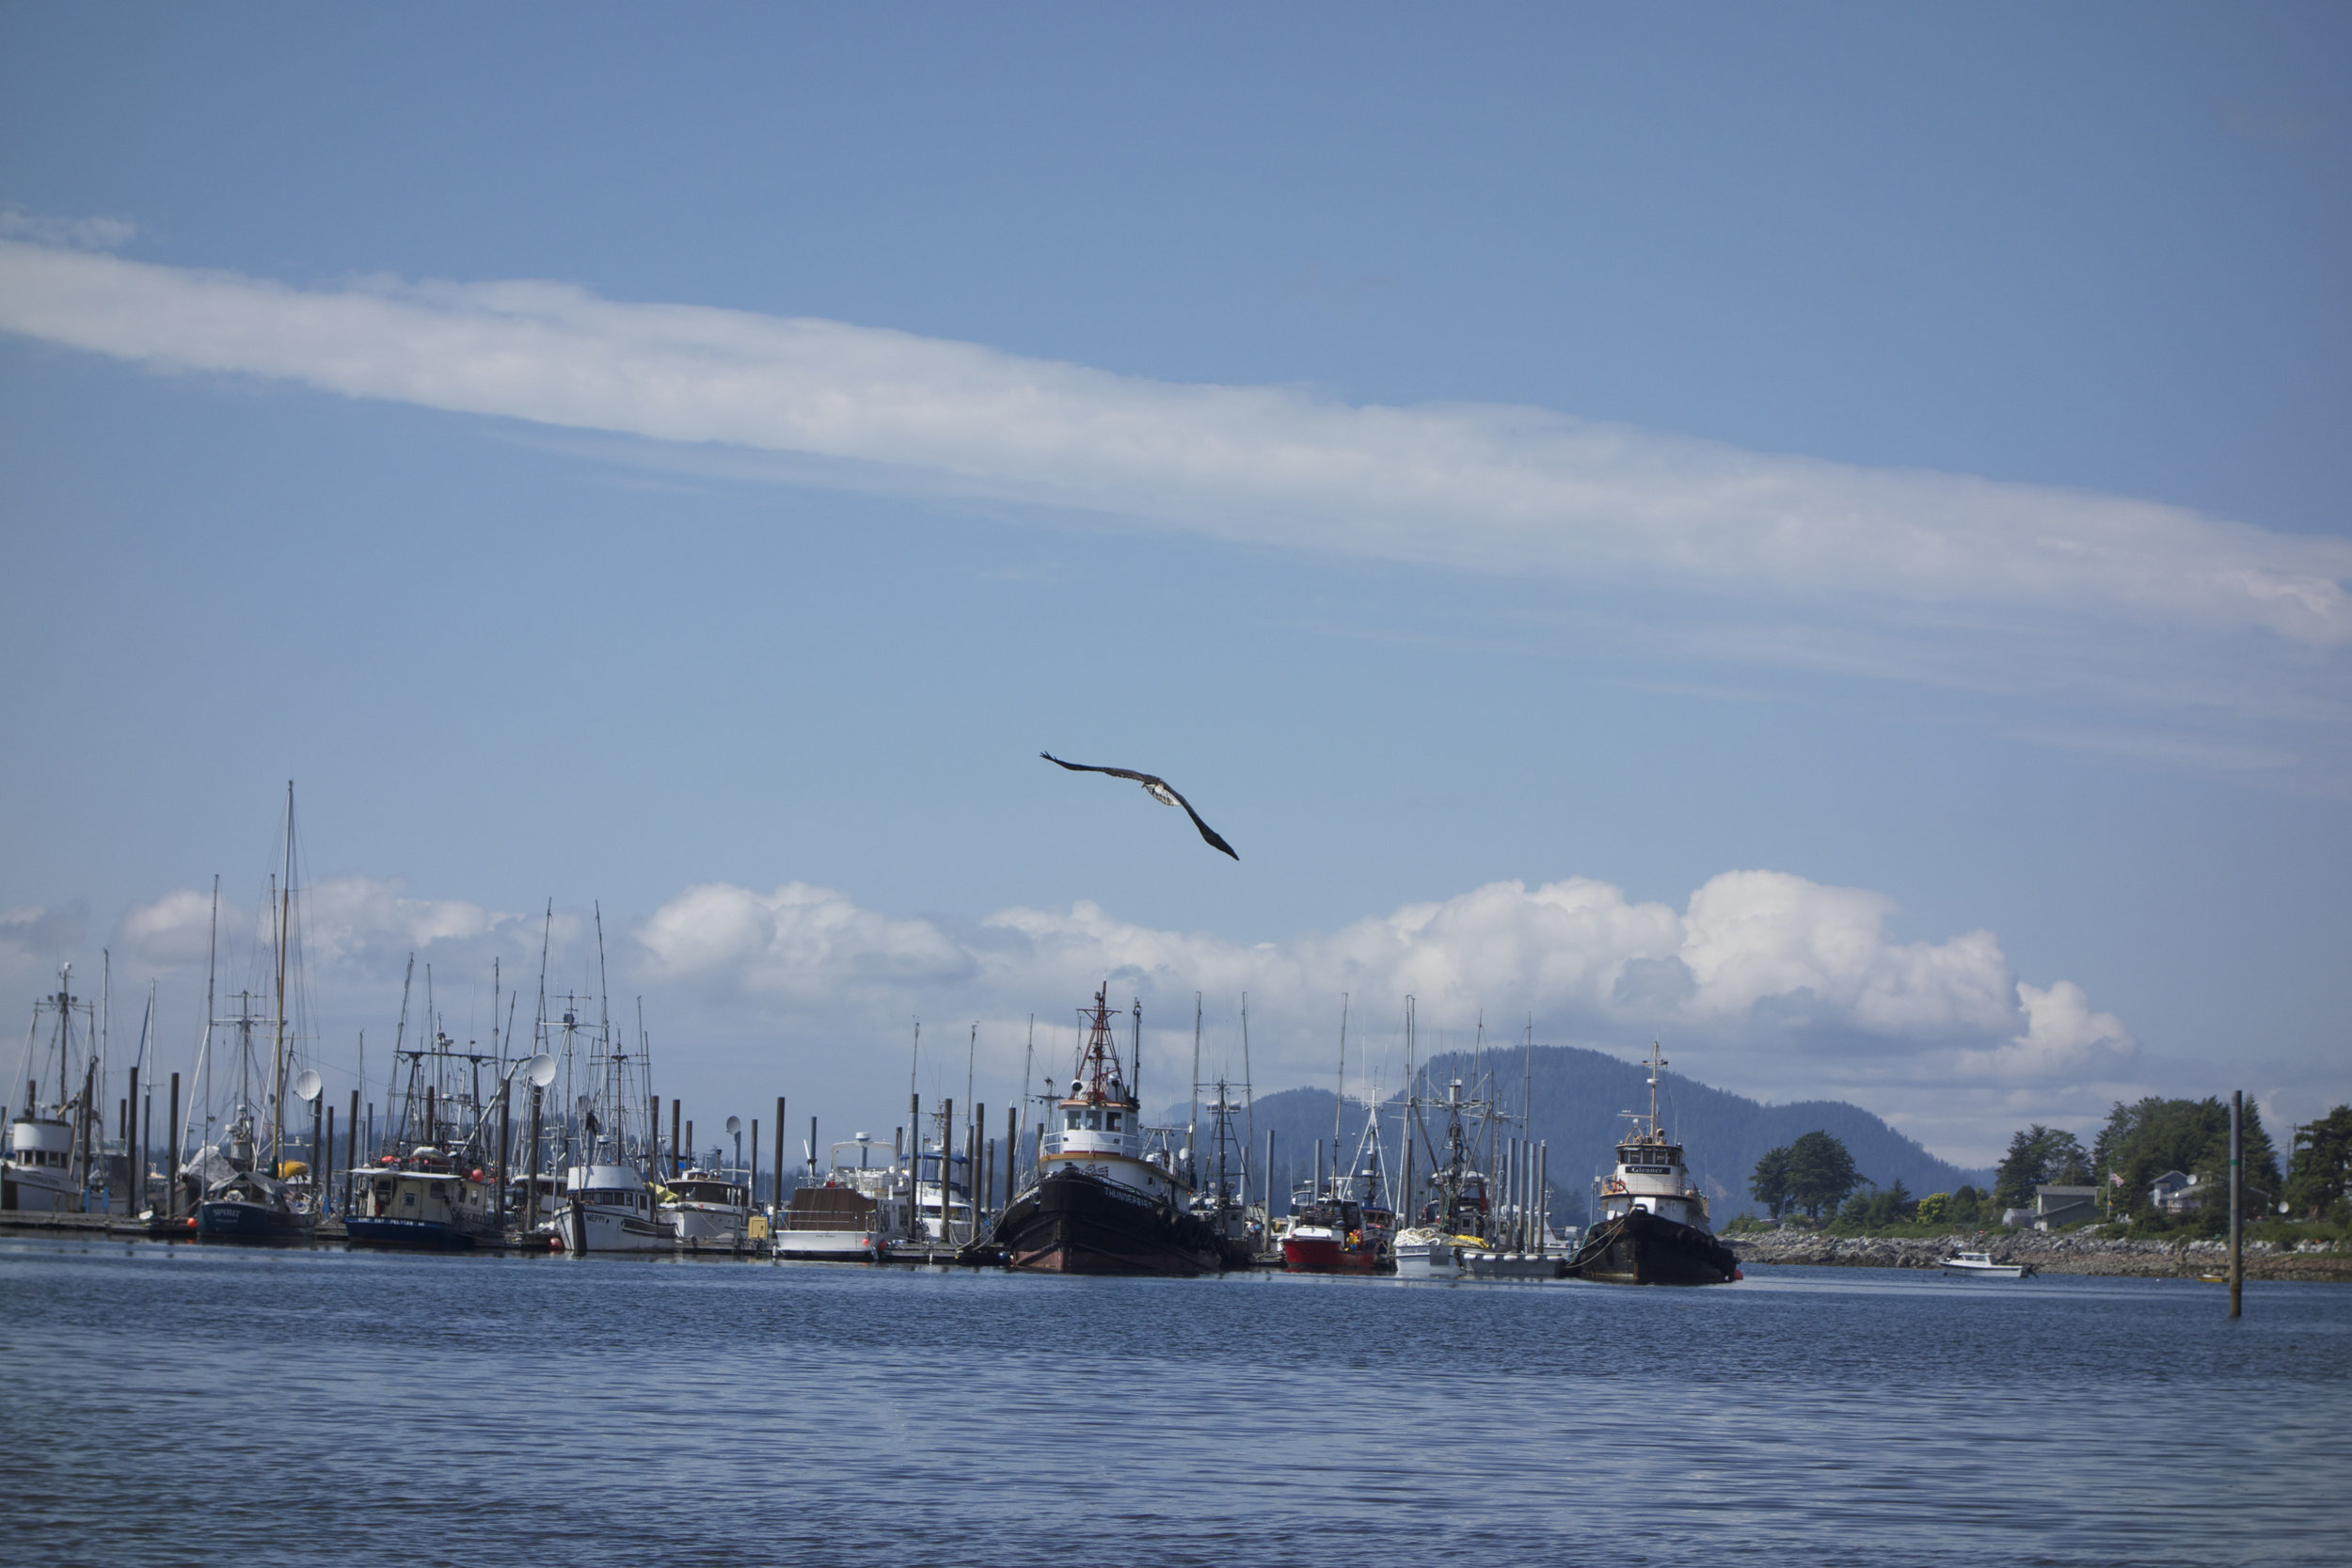 Sitka, AK., is one of two commercial fishing communities featured in this comparative study on Dillingham and Sitka. Photo: Taylor Rees